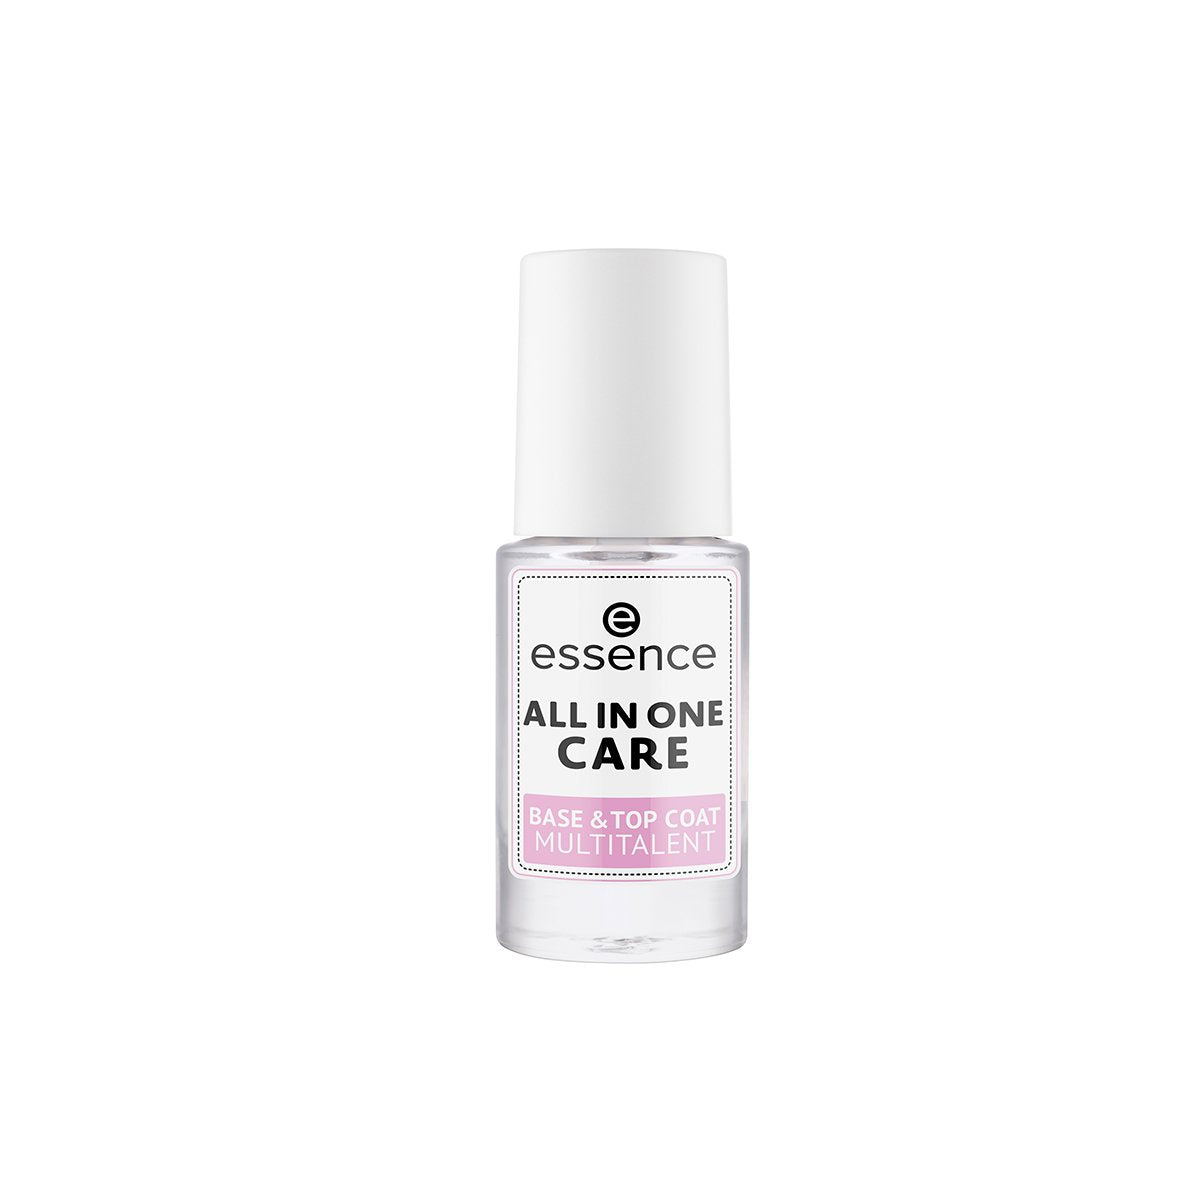 Essence All In One Care Base & Top Coat Multitalent